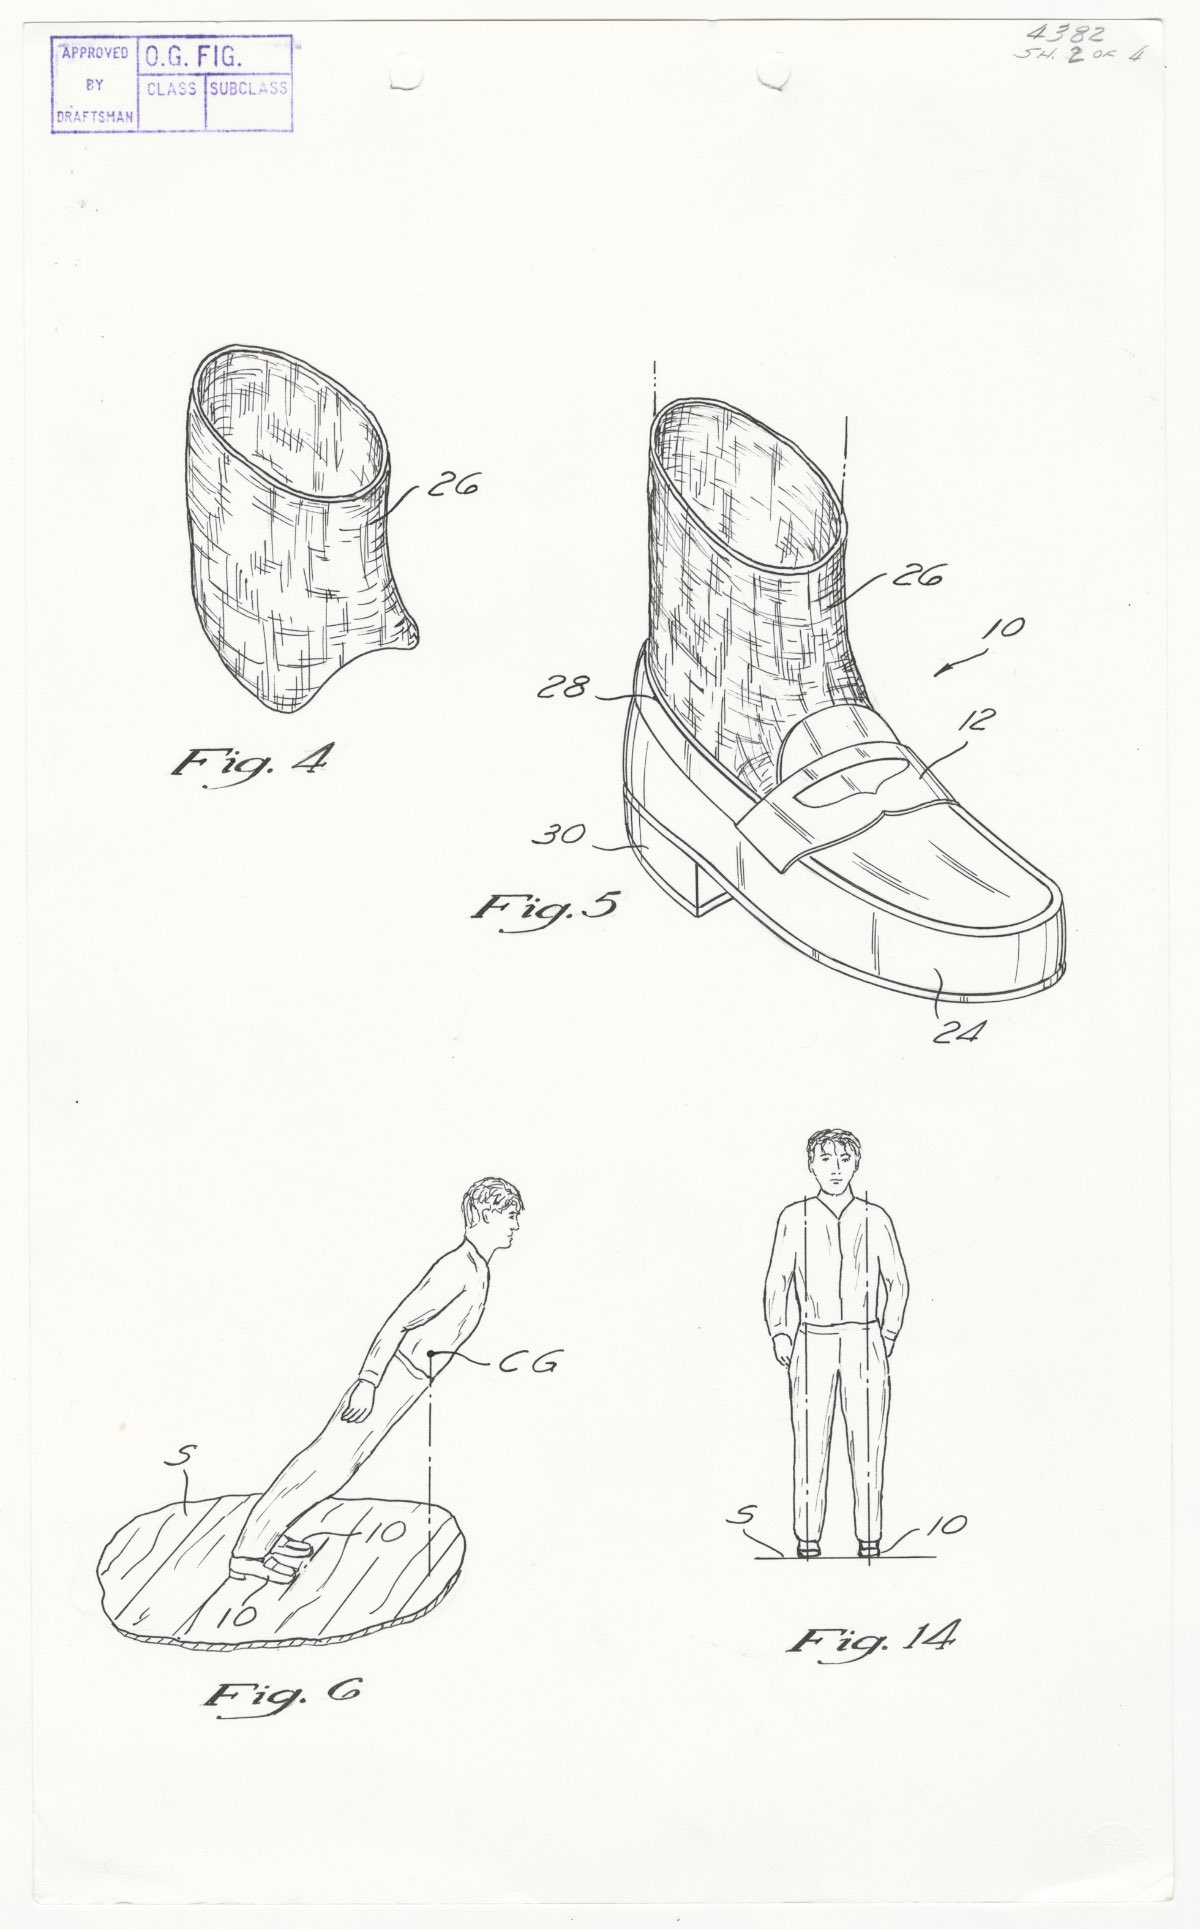 Patent Number 5,255,452 Michael Jackson's Anti-Gravity Illusion Shoes Selected Patent Case Files Record Group 241 Records of the Trademark and Patent Office HMS Container ID: HC1-90359313 HMS Item ID: HD1-90980612